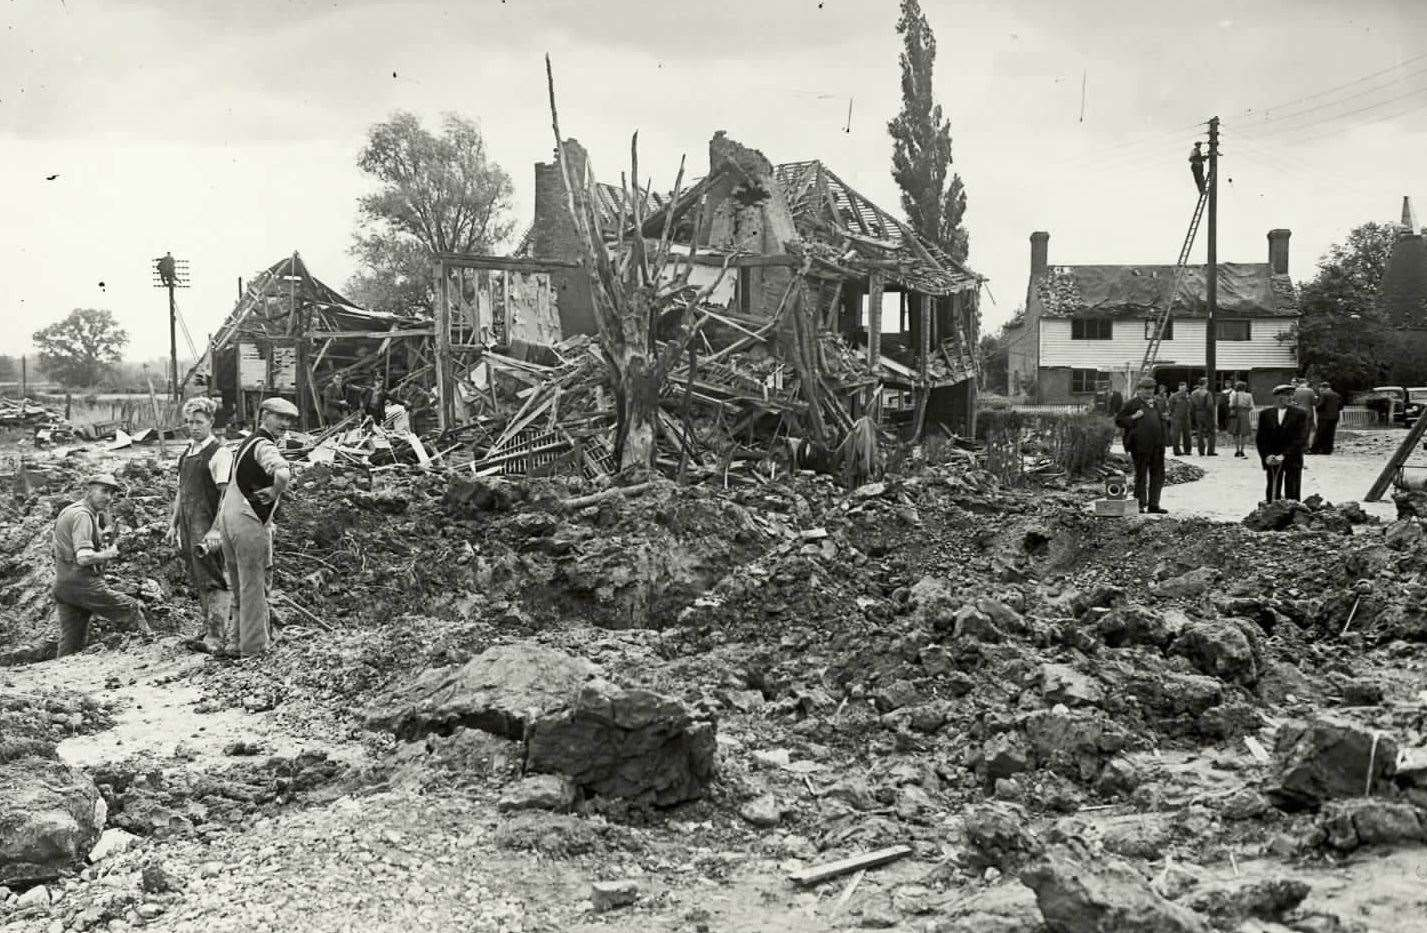 This was the devastation caused when a V1 flying bomb fell in Smarden, near Ashford, in October 1944